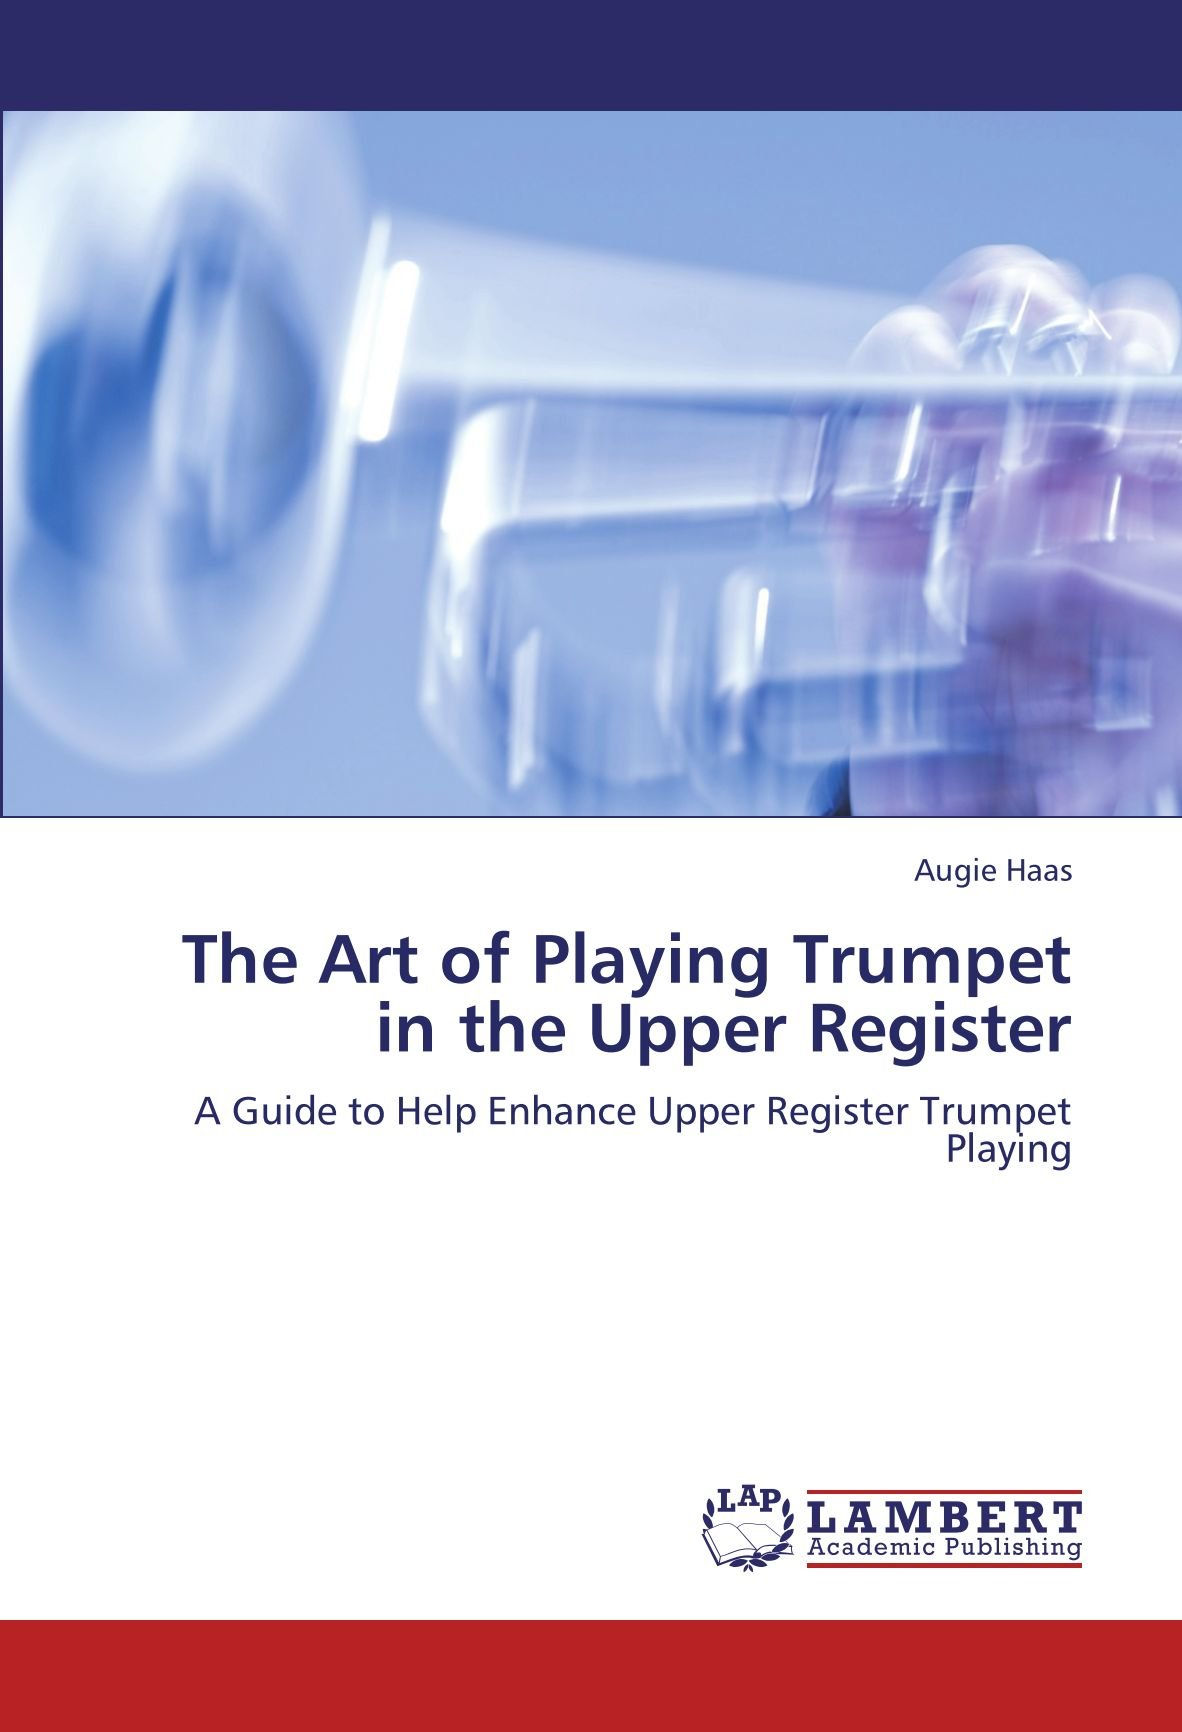 Download The Art of Playing Trumpet in the Upper Register: A Guide to Help Enhance Upper Register Trumpet Playing PDF